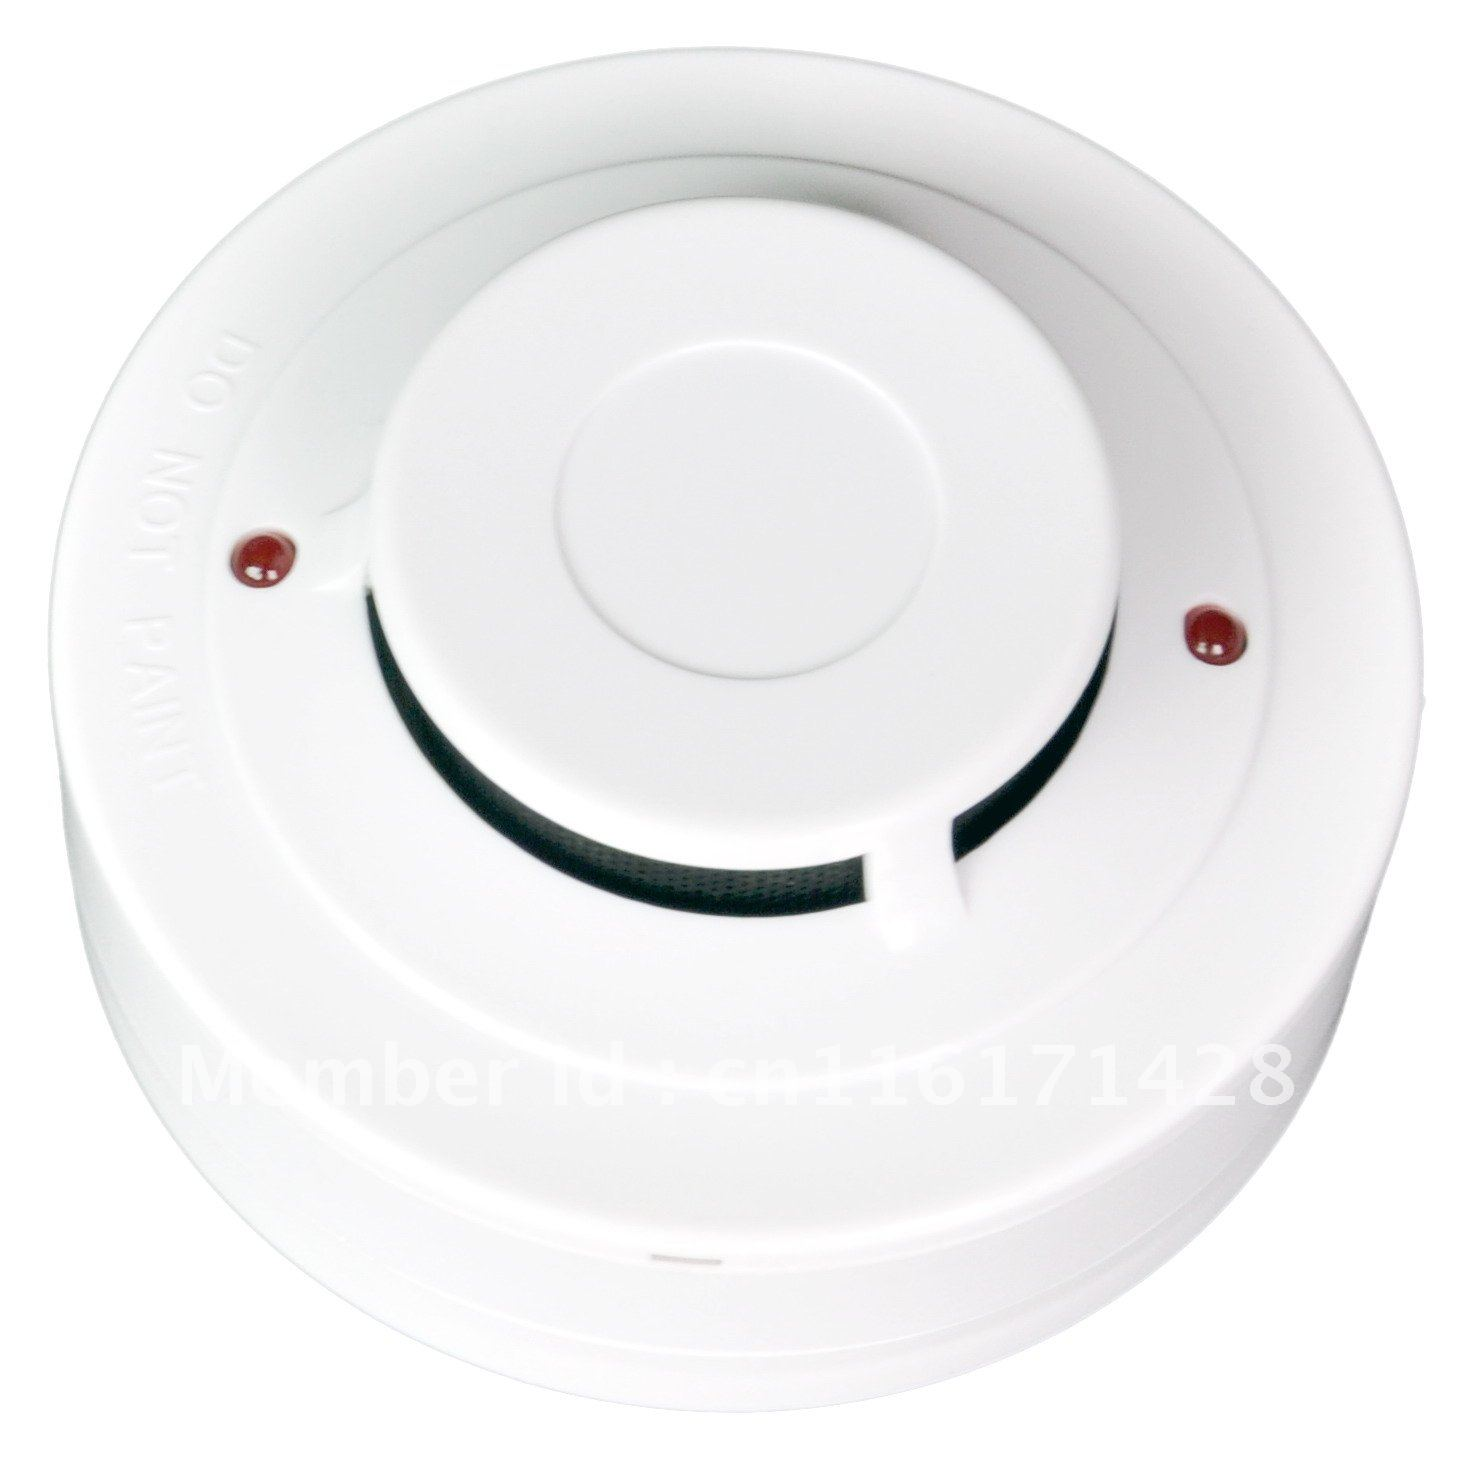 US $7.5 |Conventional Photoelectric Smoke Detector YT102C 2 Wire smoke Wiring Smoke Detector on sprinkler head, smoke detector coil, smoke detector circuits, heat detector, smoke detector construction, smoke detectors 1975, manual fire alarm activation, gaseous fire suppression, smoke detector enclosure, fire sprinkler, smoke detector schematic, smoke detector banner, carbon monoxide detector wiring, smoke detector lighting, smoke detector mounting, active fire protection, smoke detector kitchen, smoke detector diagram, aspirating smoke detector, fire alarm call box, smoke detector filters, smoke detector connections, smoke alarm circuit wiring, fire suppression system, smoke detector assembly, carbon monoxide detector, smoke detector connectors, flame detector, fire alarm control panel, smoke alarm placement in home, burglar alarm, gas detector, smoke detector lens, smoke detector terminals,